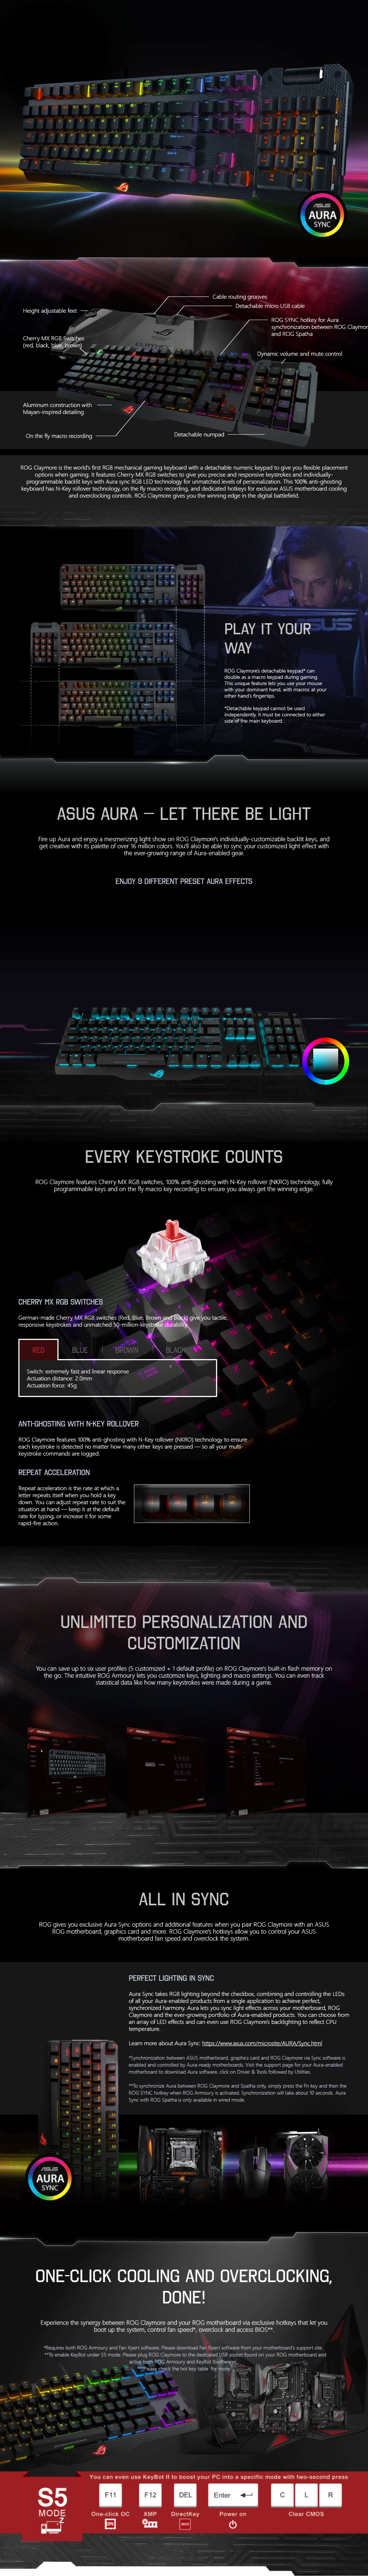 Asus ROG Claymore Mechanical RGB Keyboard Cherry MX (Red)